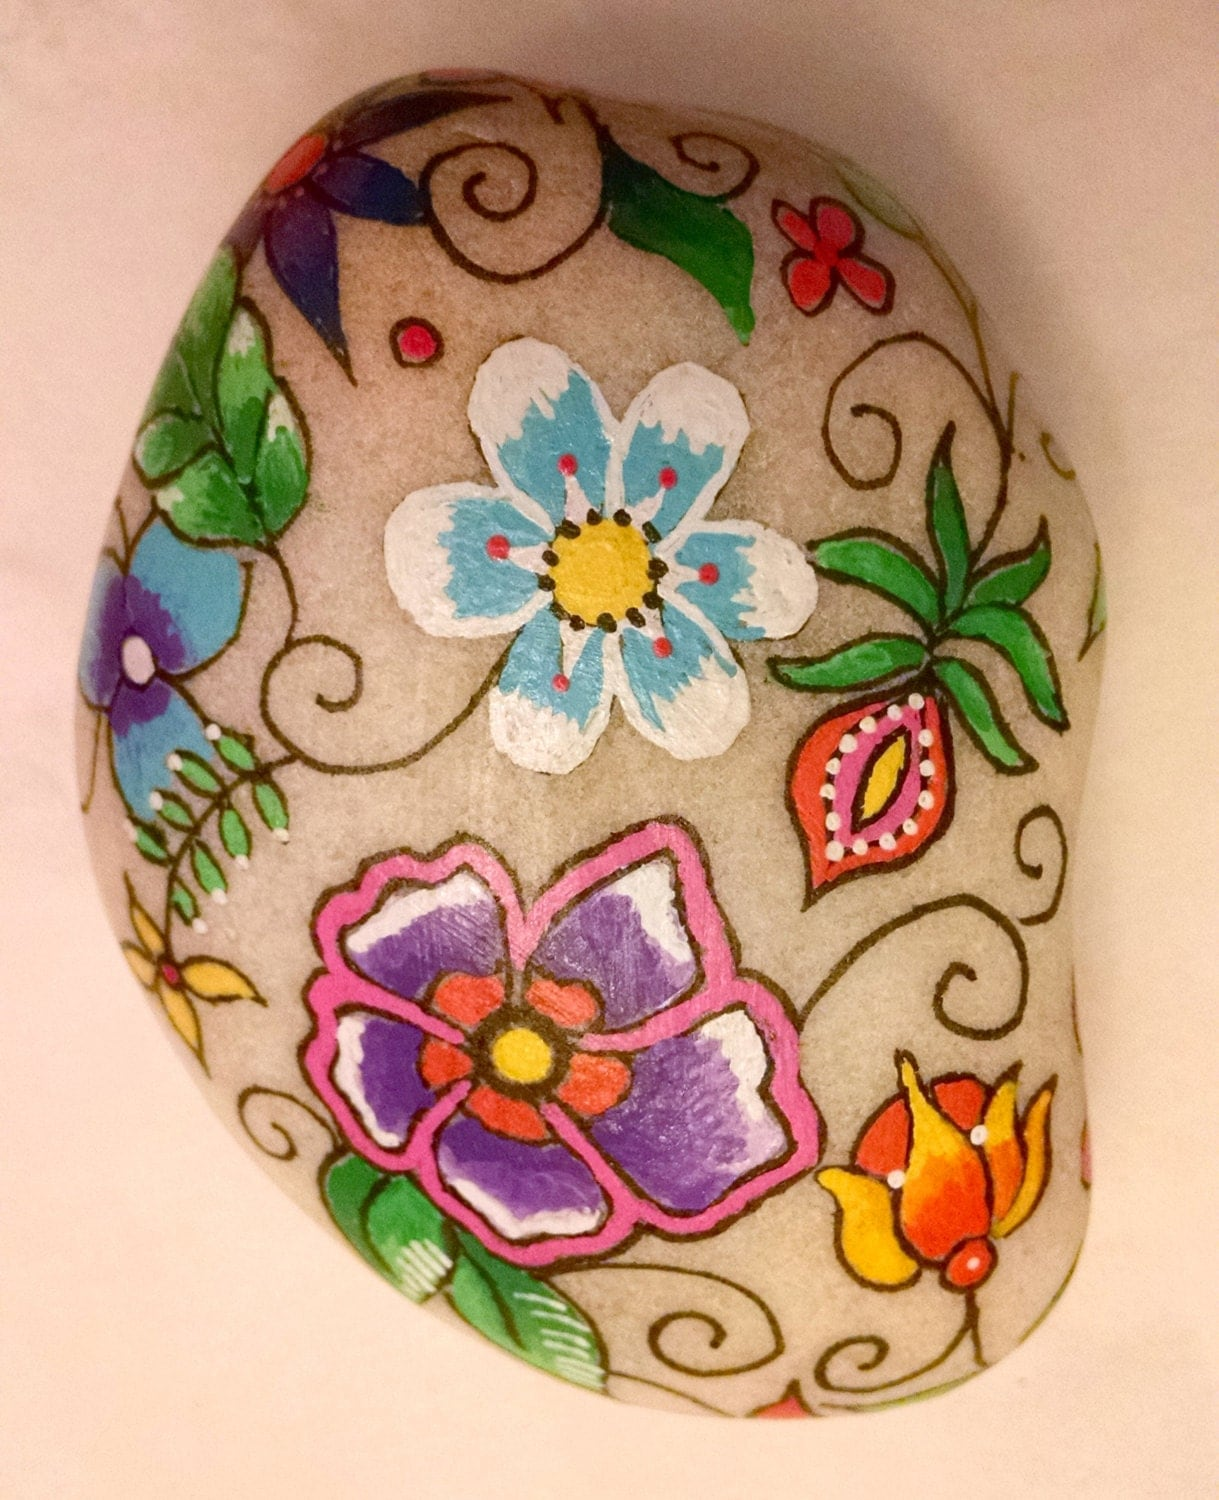 Painted Flowers on Rock Acrylic on Stone hand painted on Rock